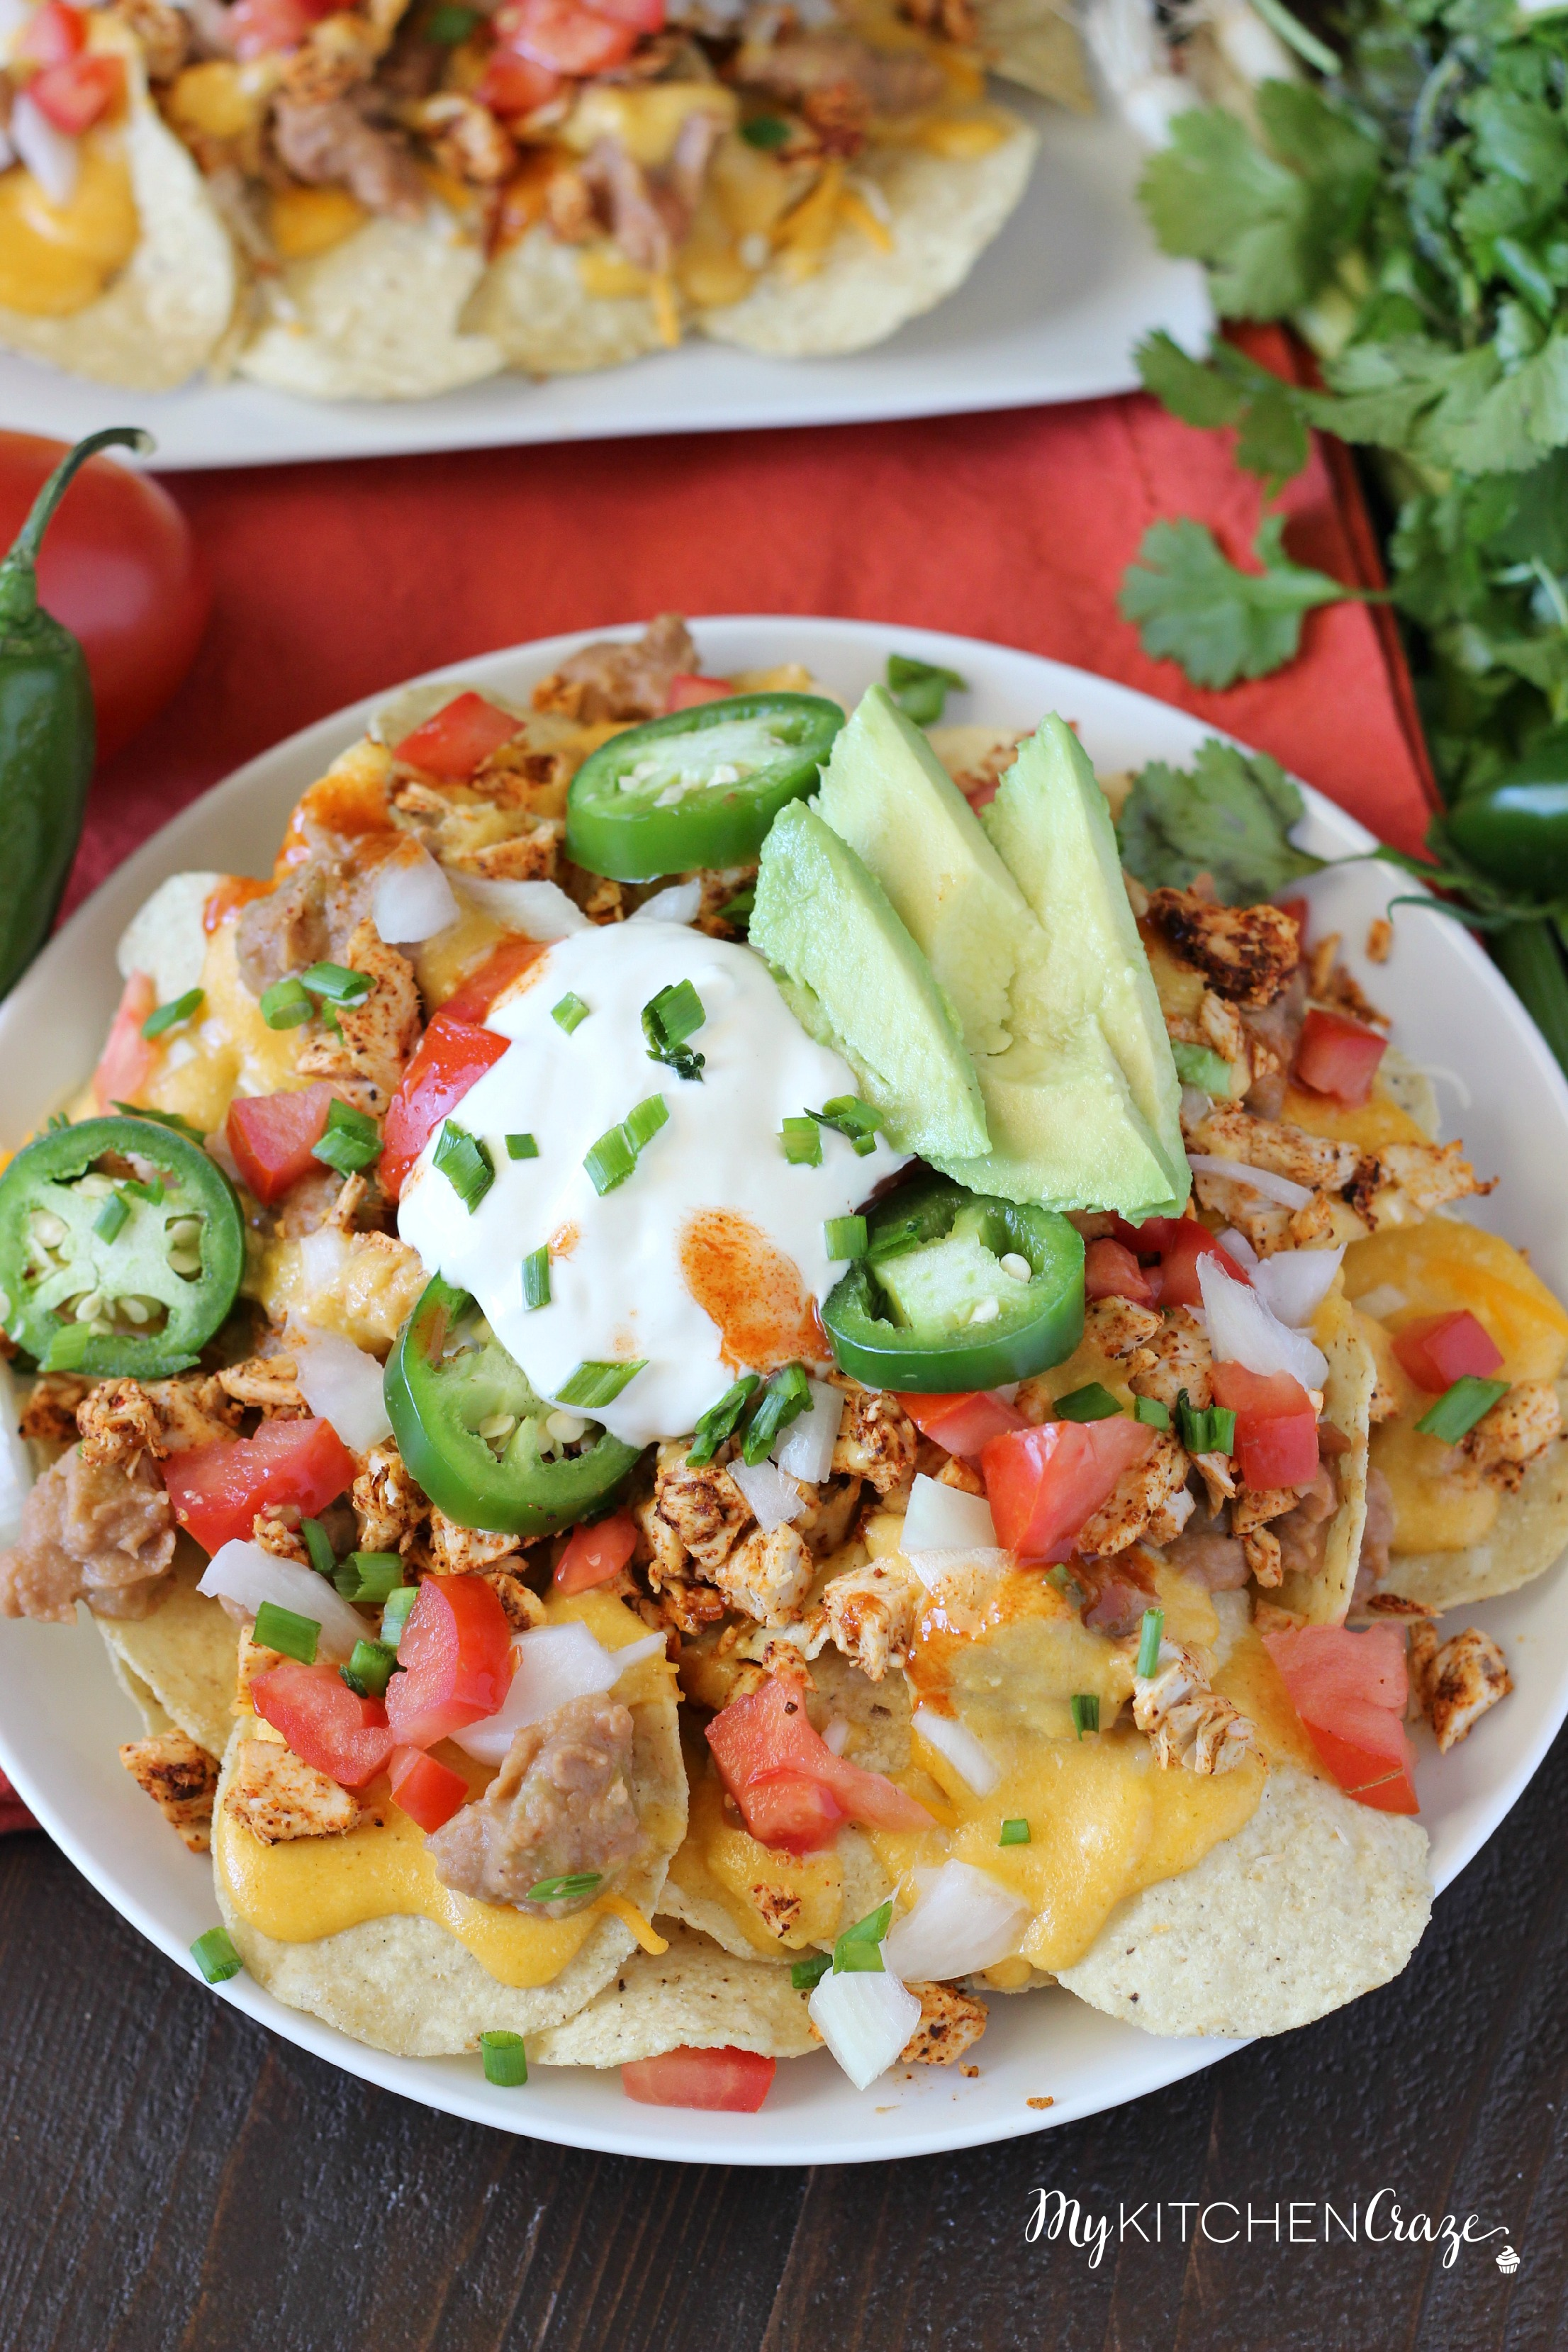 Spicy Turkey Nachos ~ mykitchencraze.com ~ Perfect way to use up the leftover turkey from Thanksgiving. Plus they're delicious and a breeze to whip up!